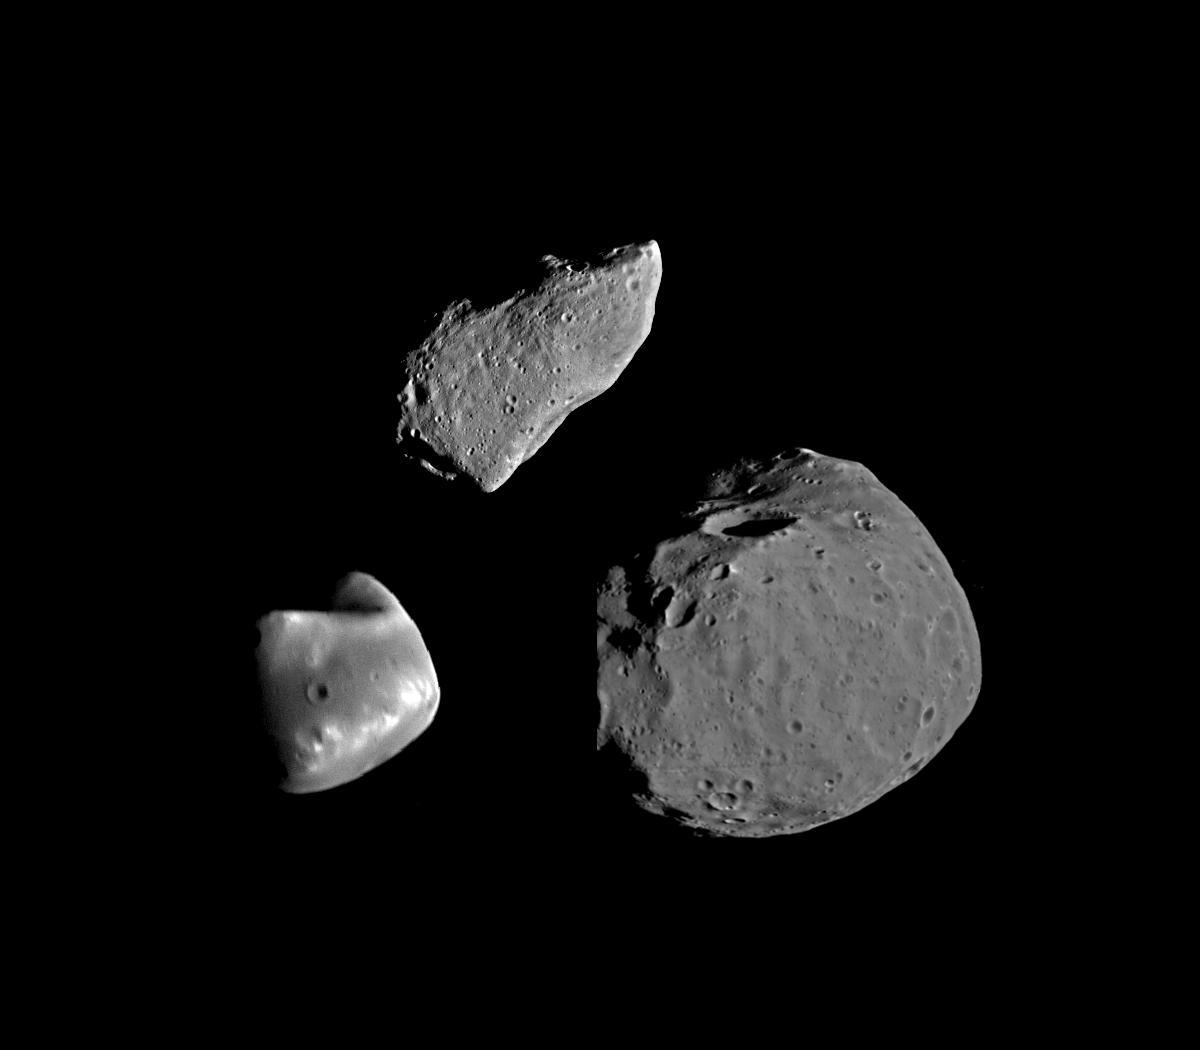 Three asteroids pass within 1 LD on March 23